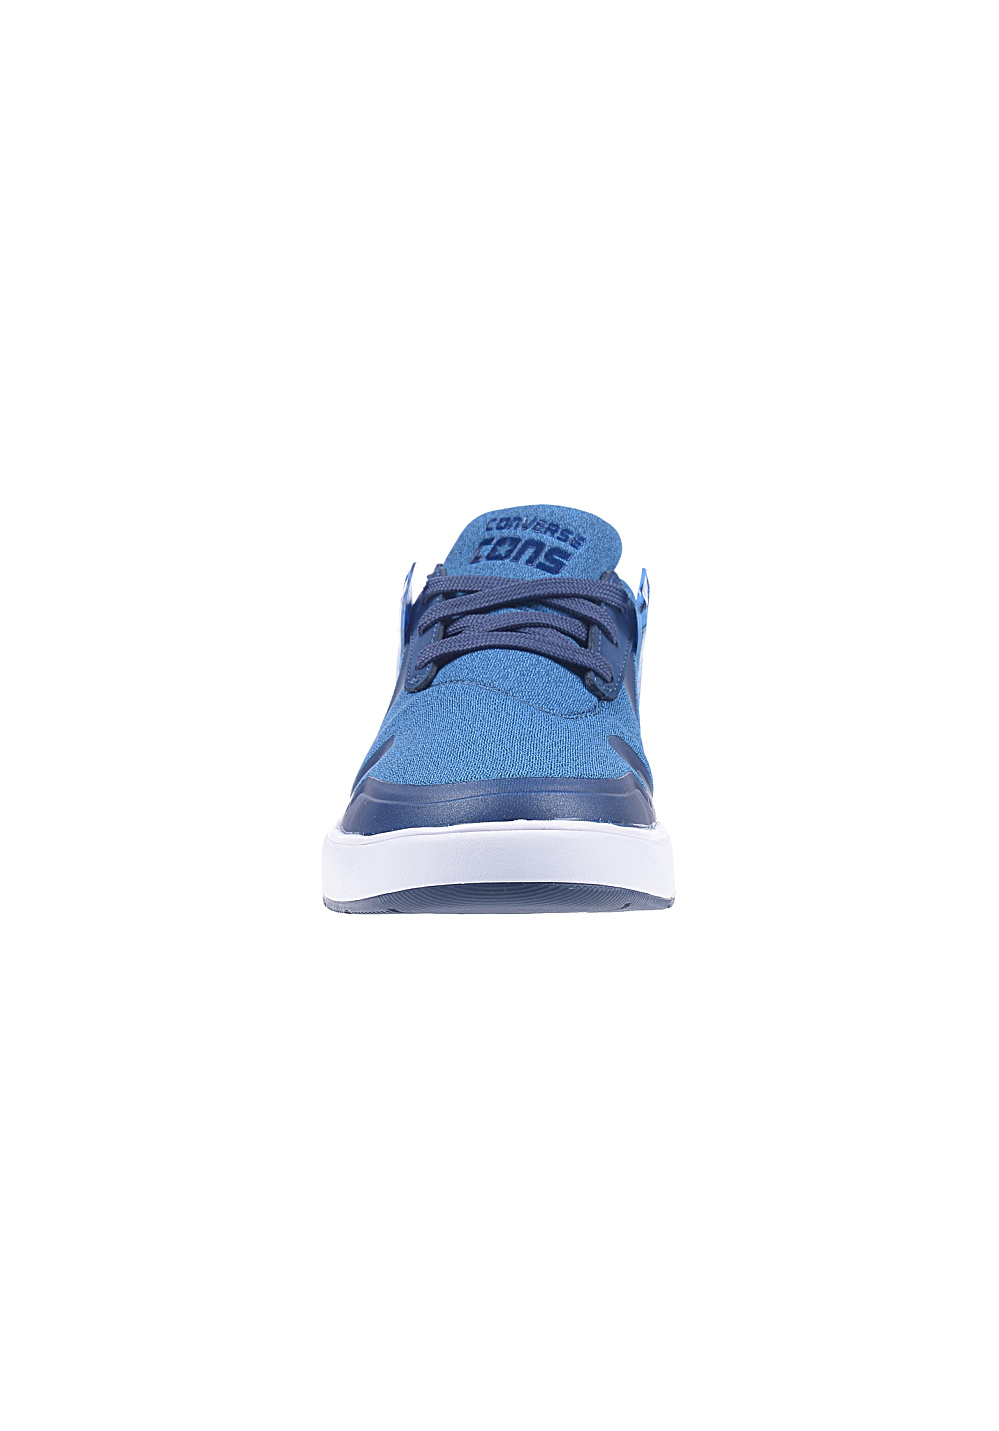 599e472a831c9a Next. -50%. Converse. Chuck Taylor All Star Weapon 2.0 Ox - Sneakers ...